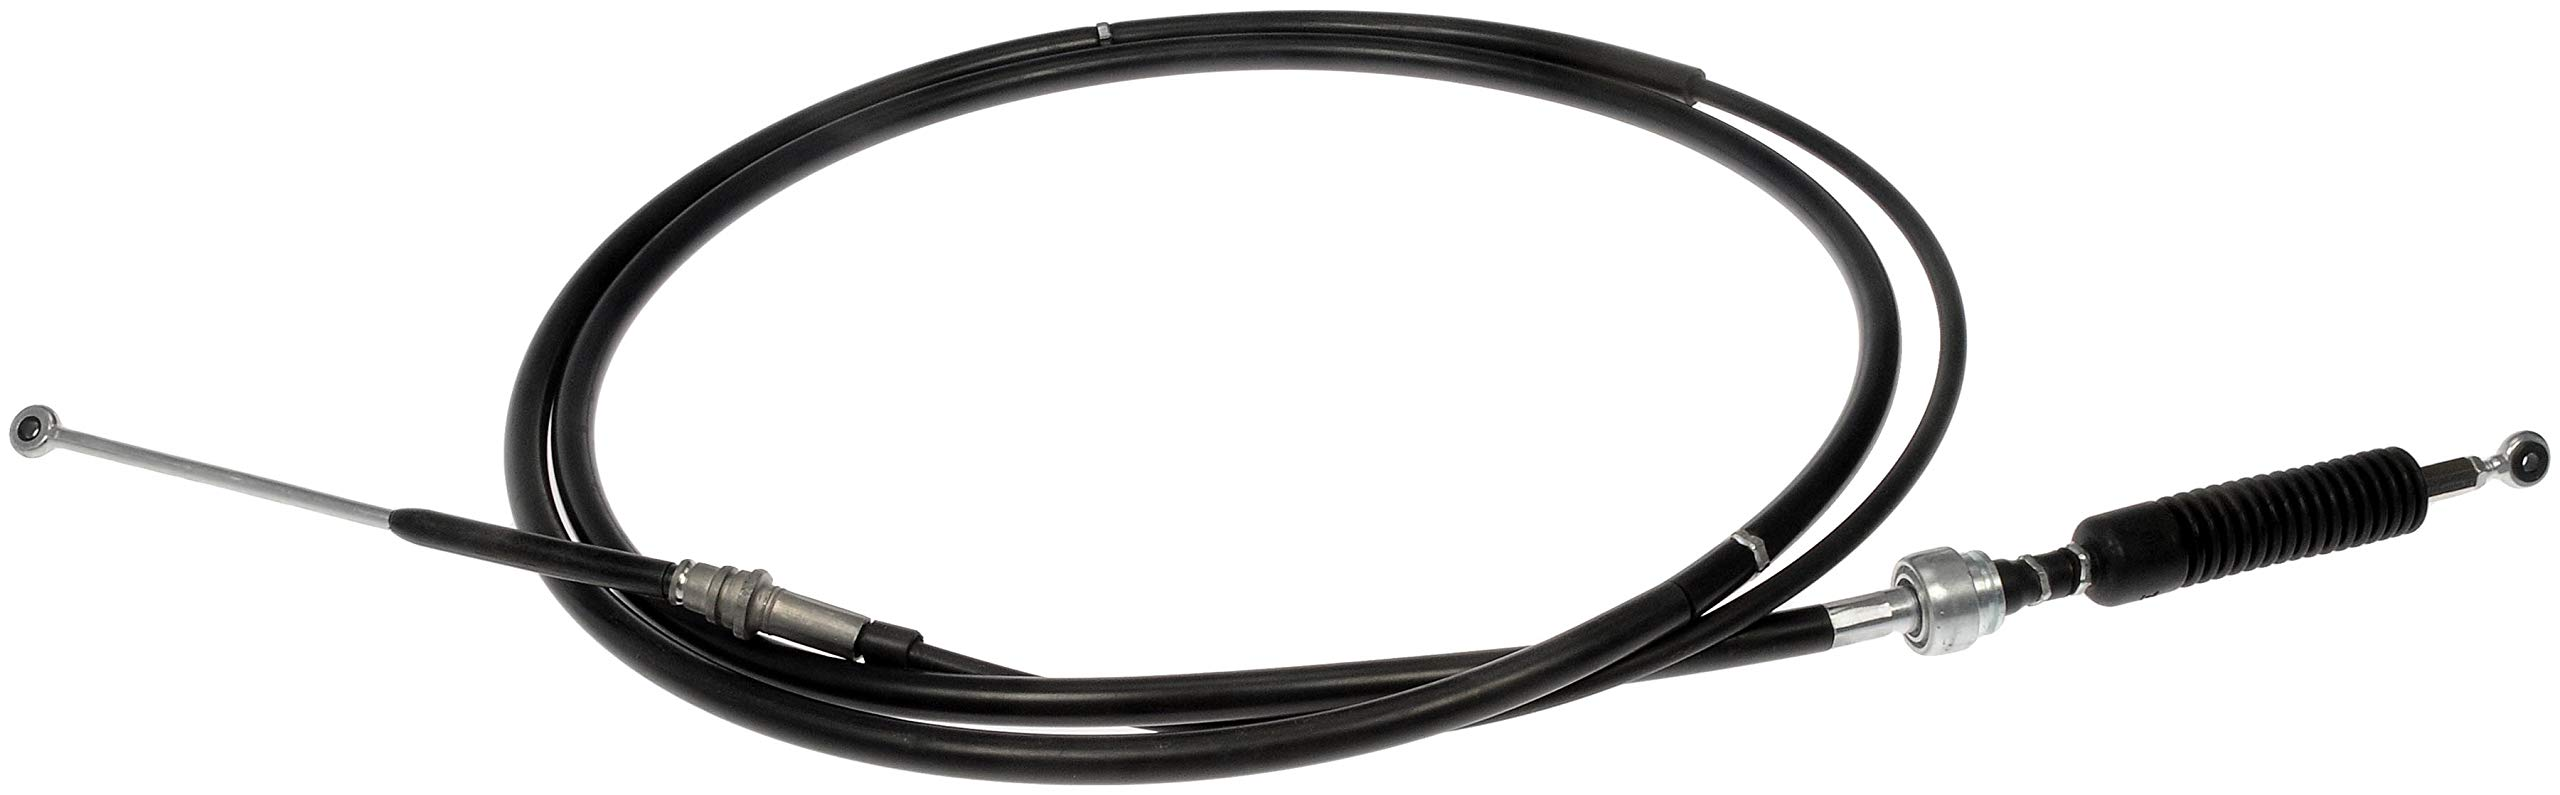 Dorman 924-7016 Gearshift Control Cable Assembly for Select Chevrolet / GMC / Isuzu Models